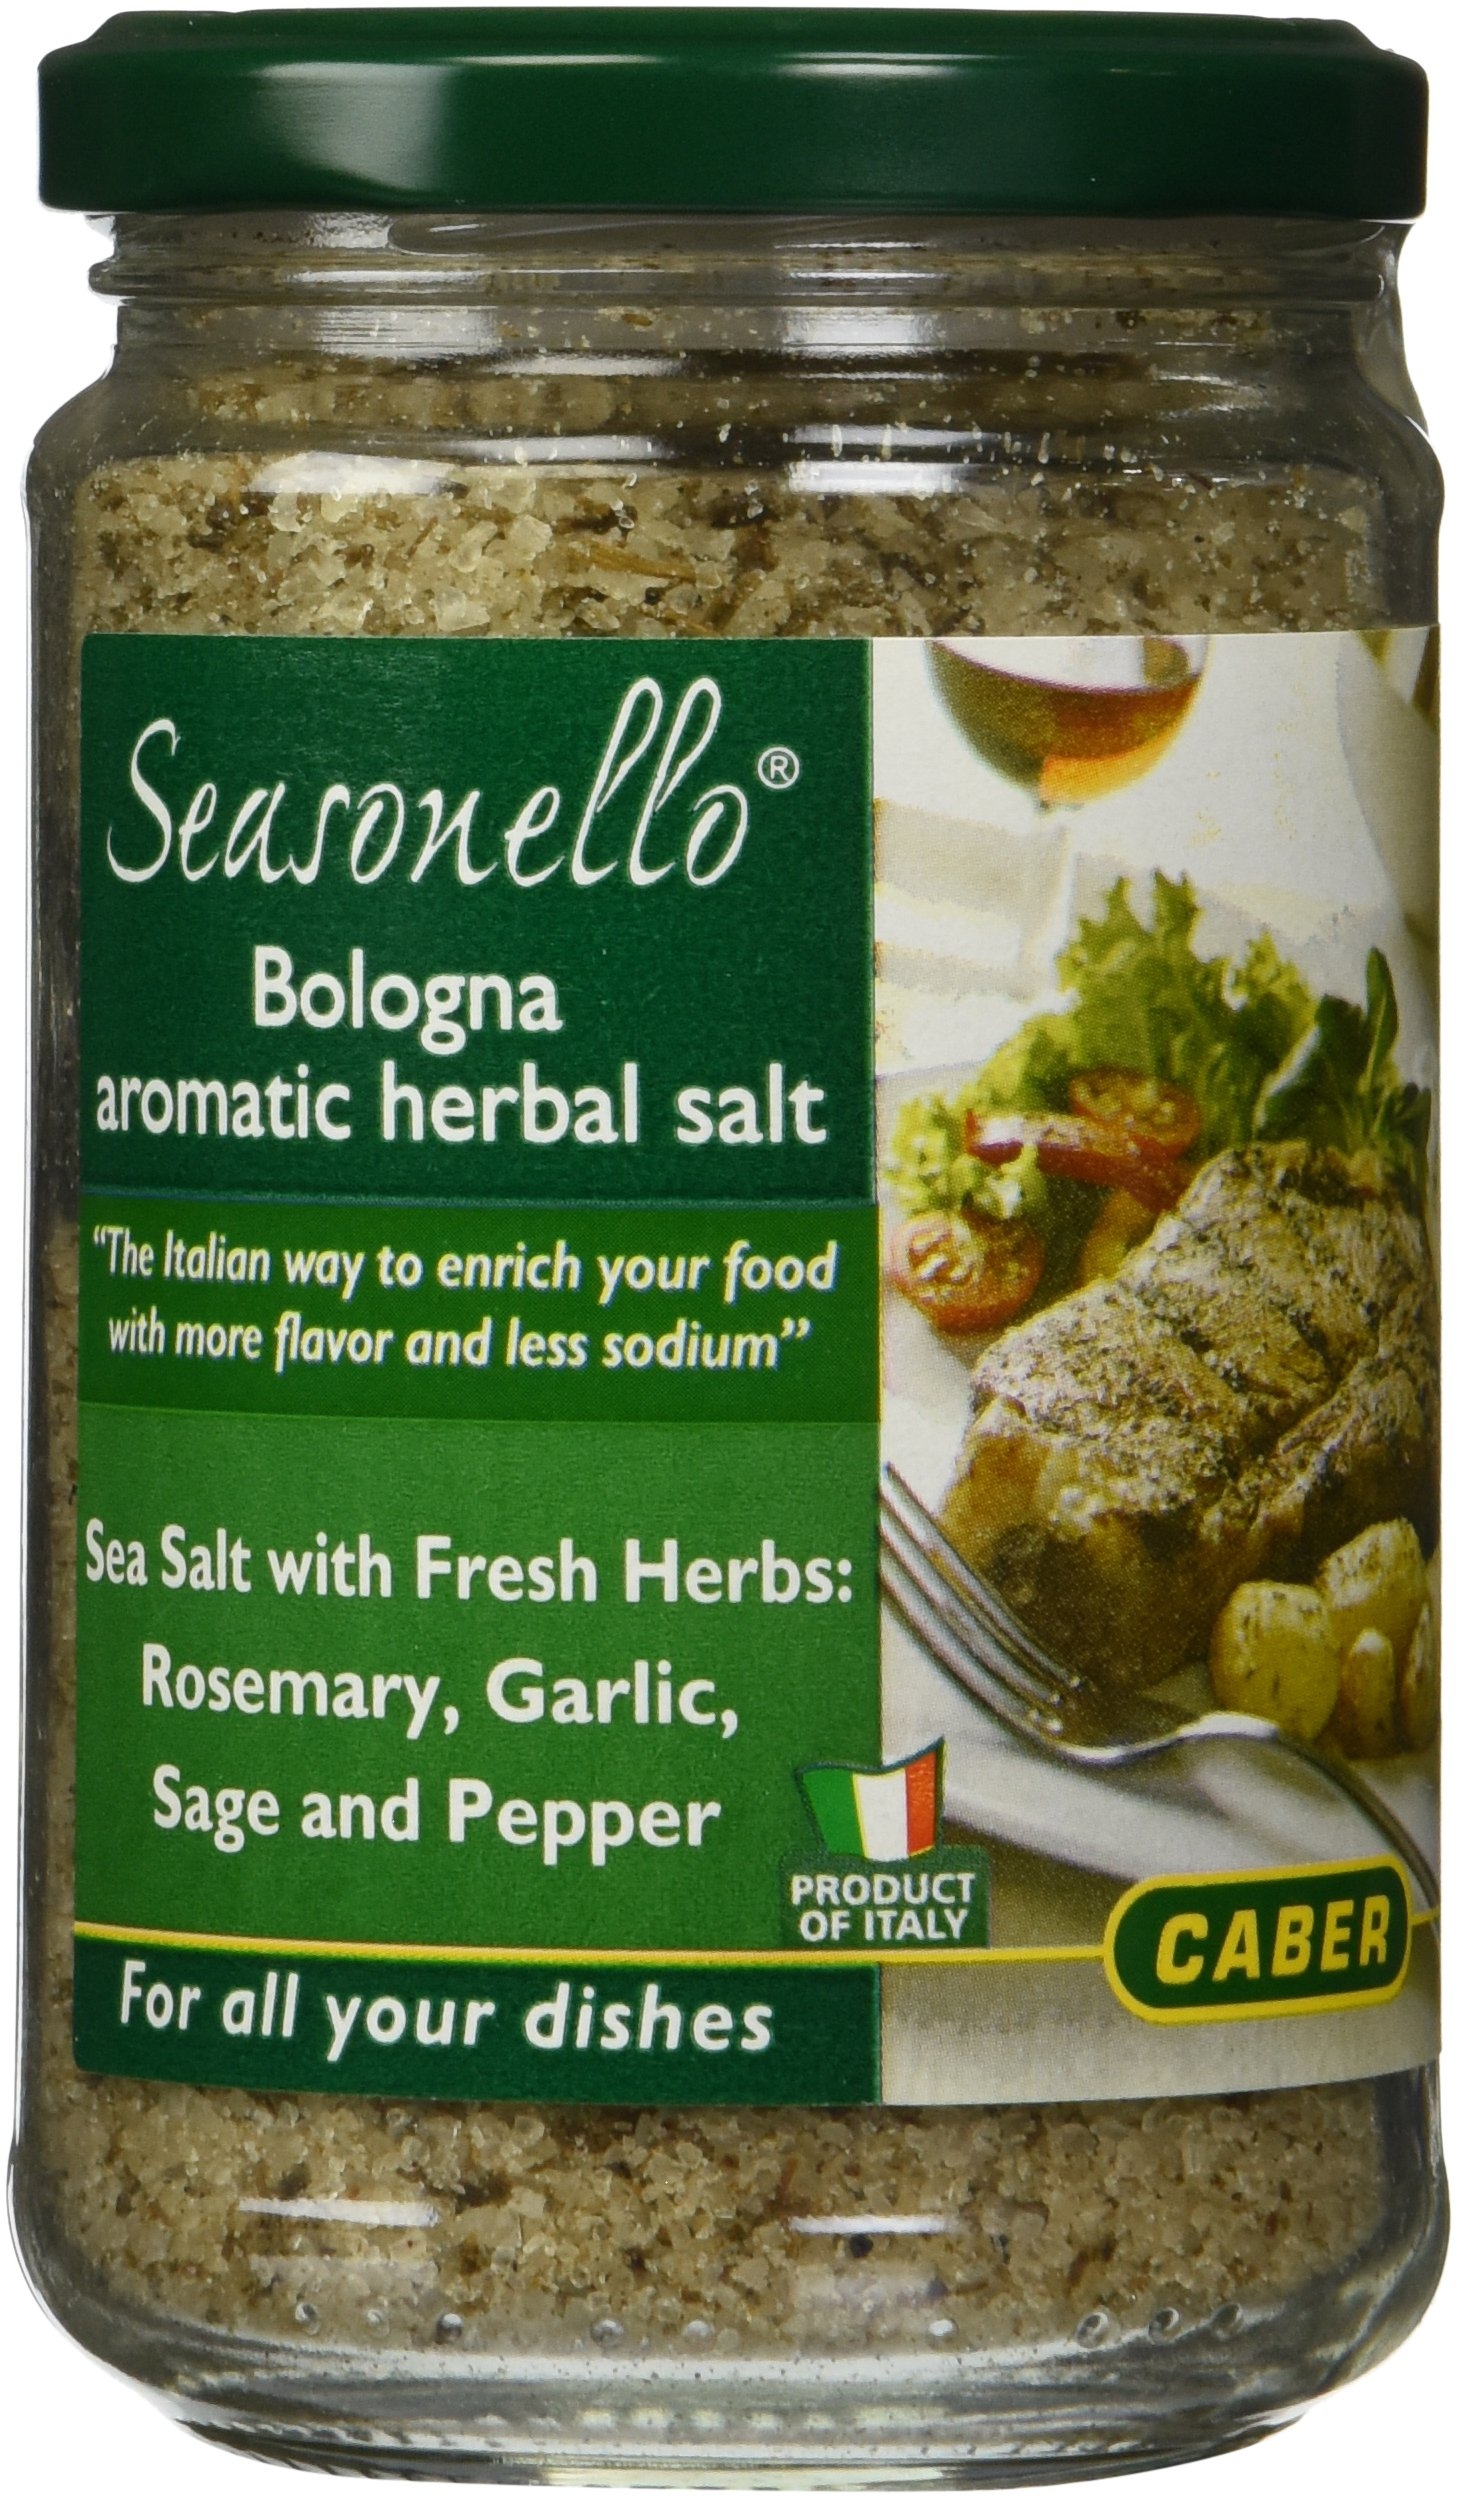 Seasonello Bologna Aromatic Herbal Salt 10.58 oz Each - 4 Jars